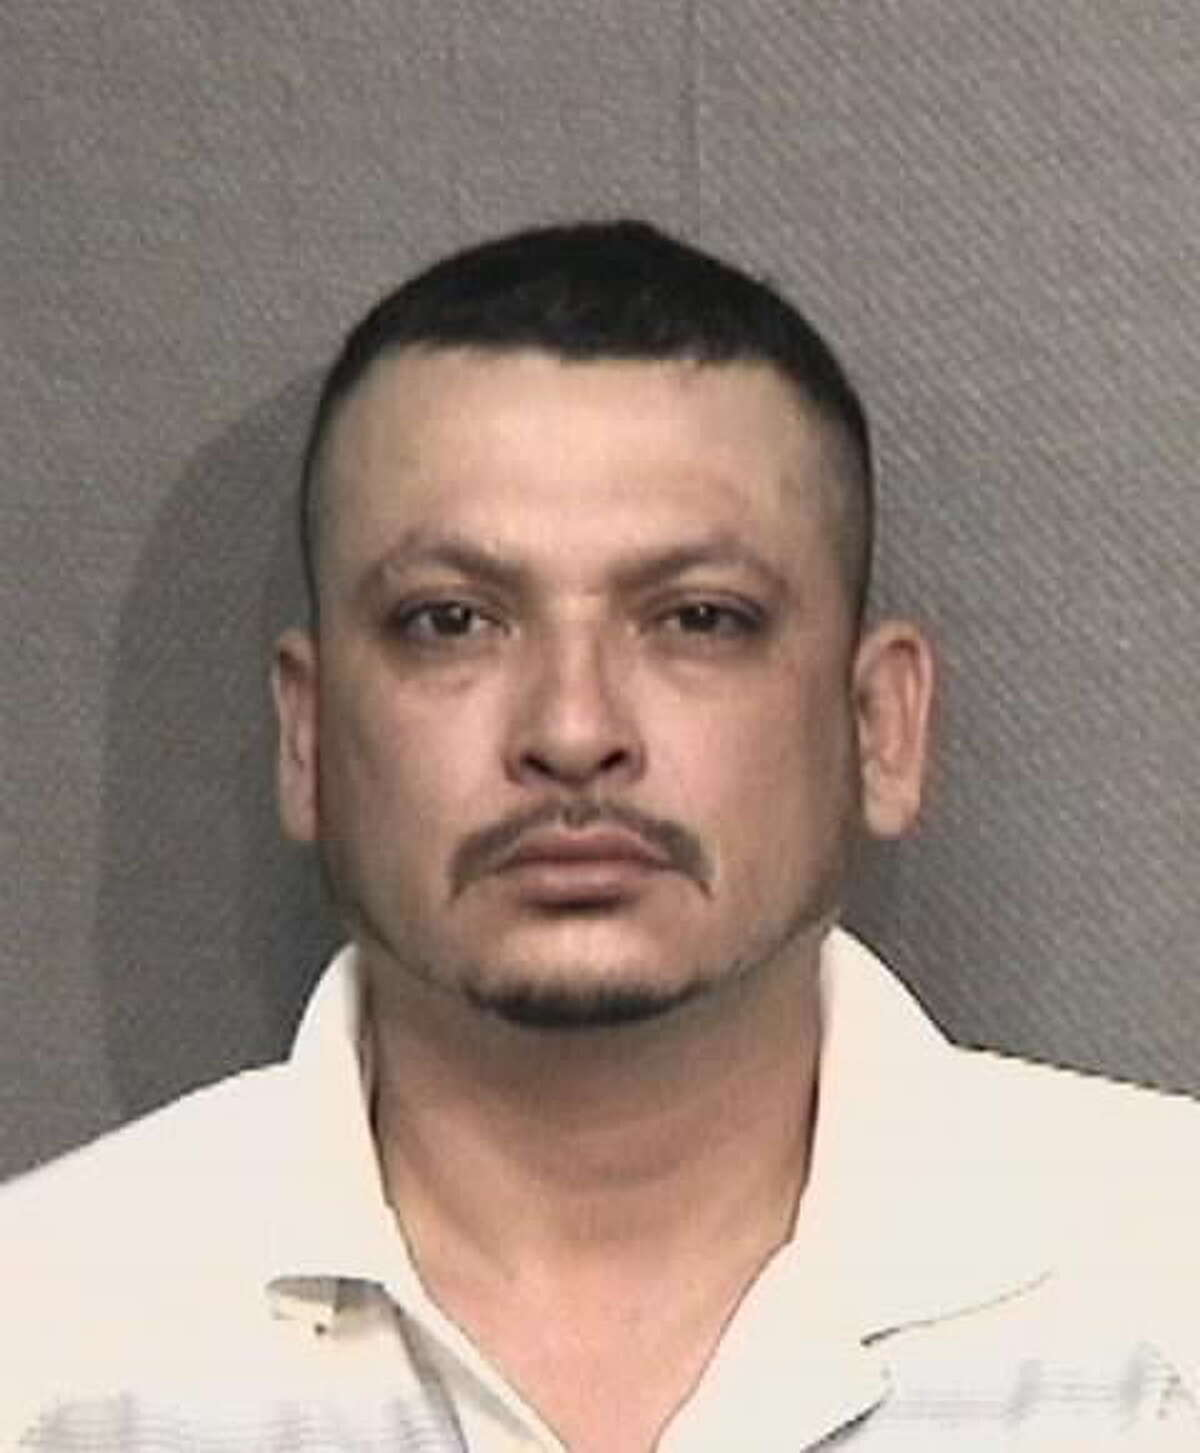 Hector Genaro Monteswas arrested in February 2018 on a third charge of DWI.